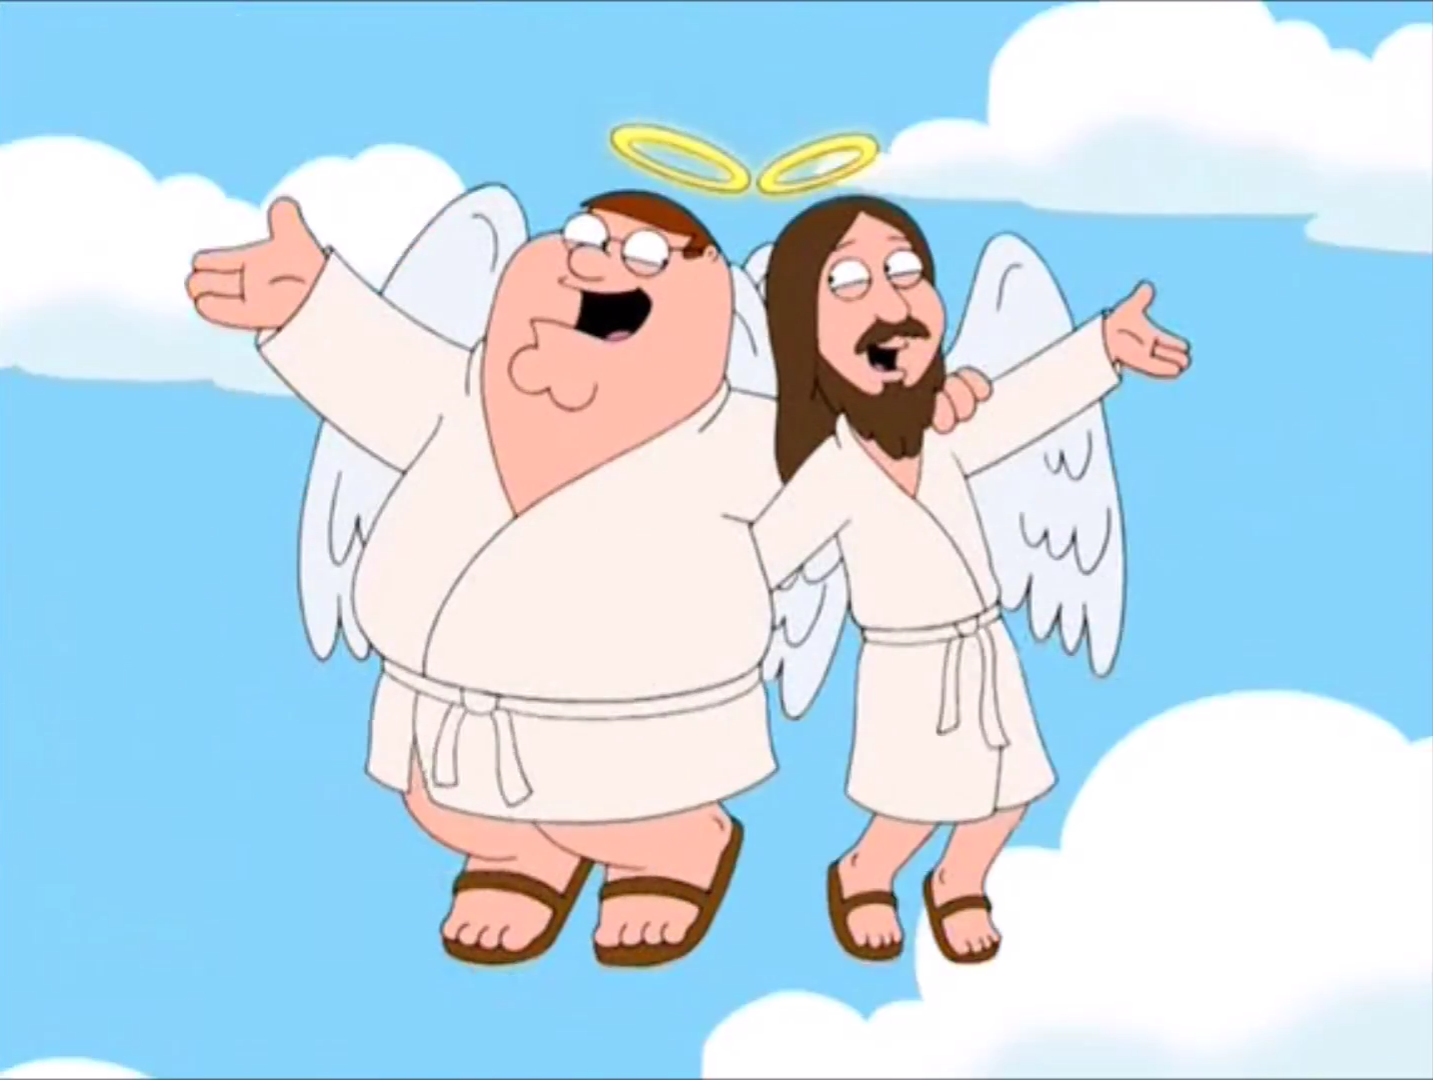 Me and Jesus